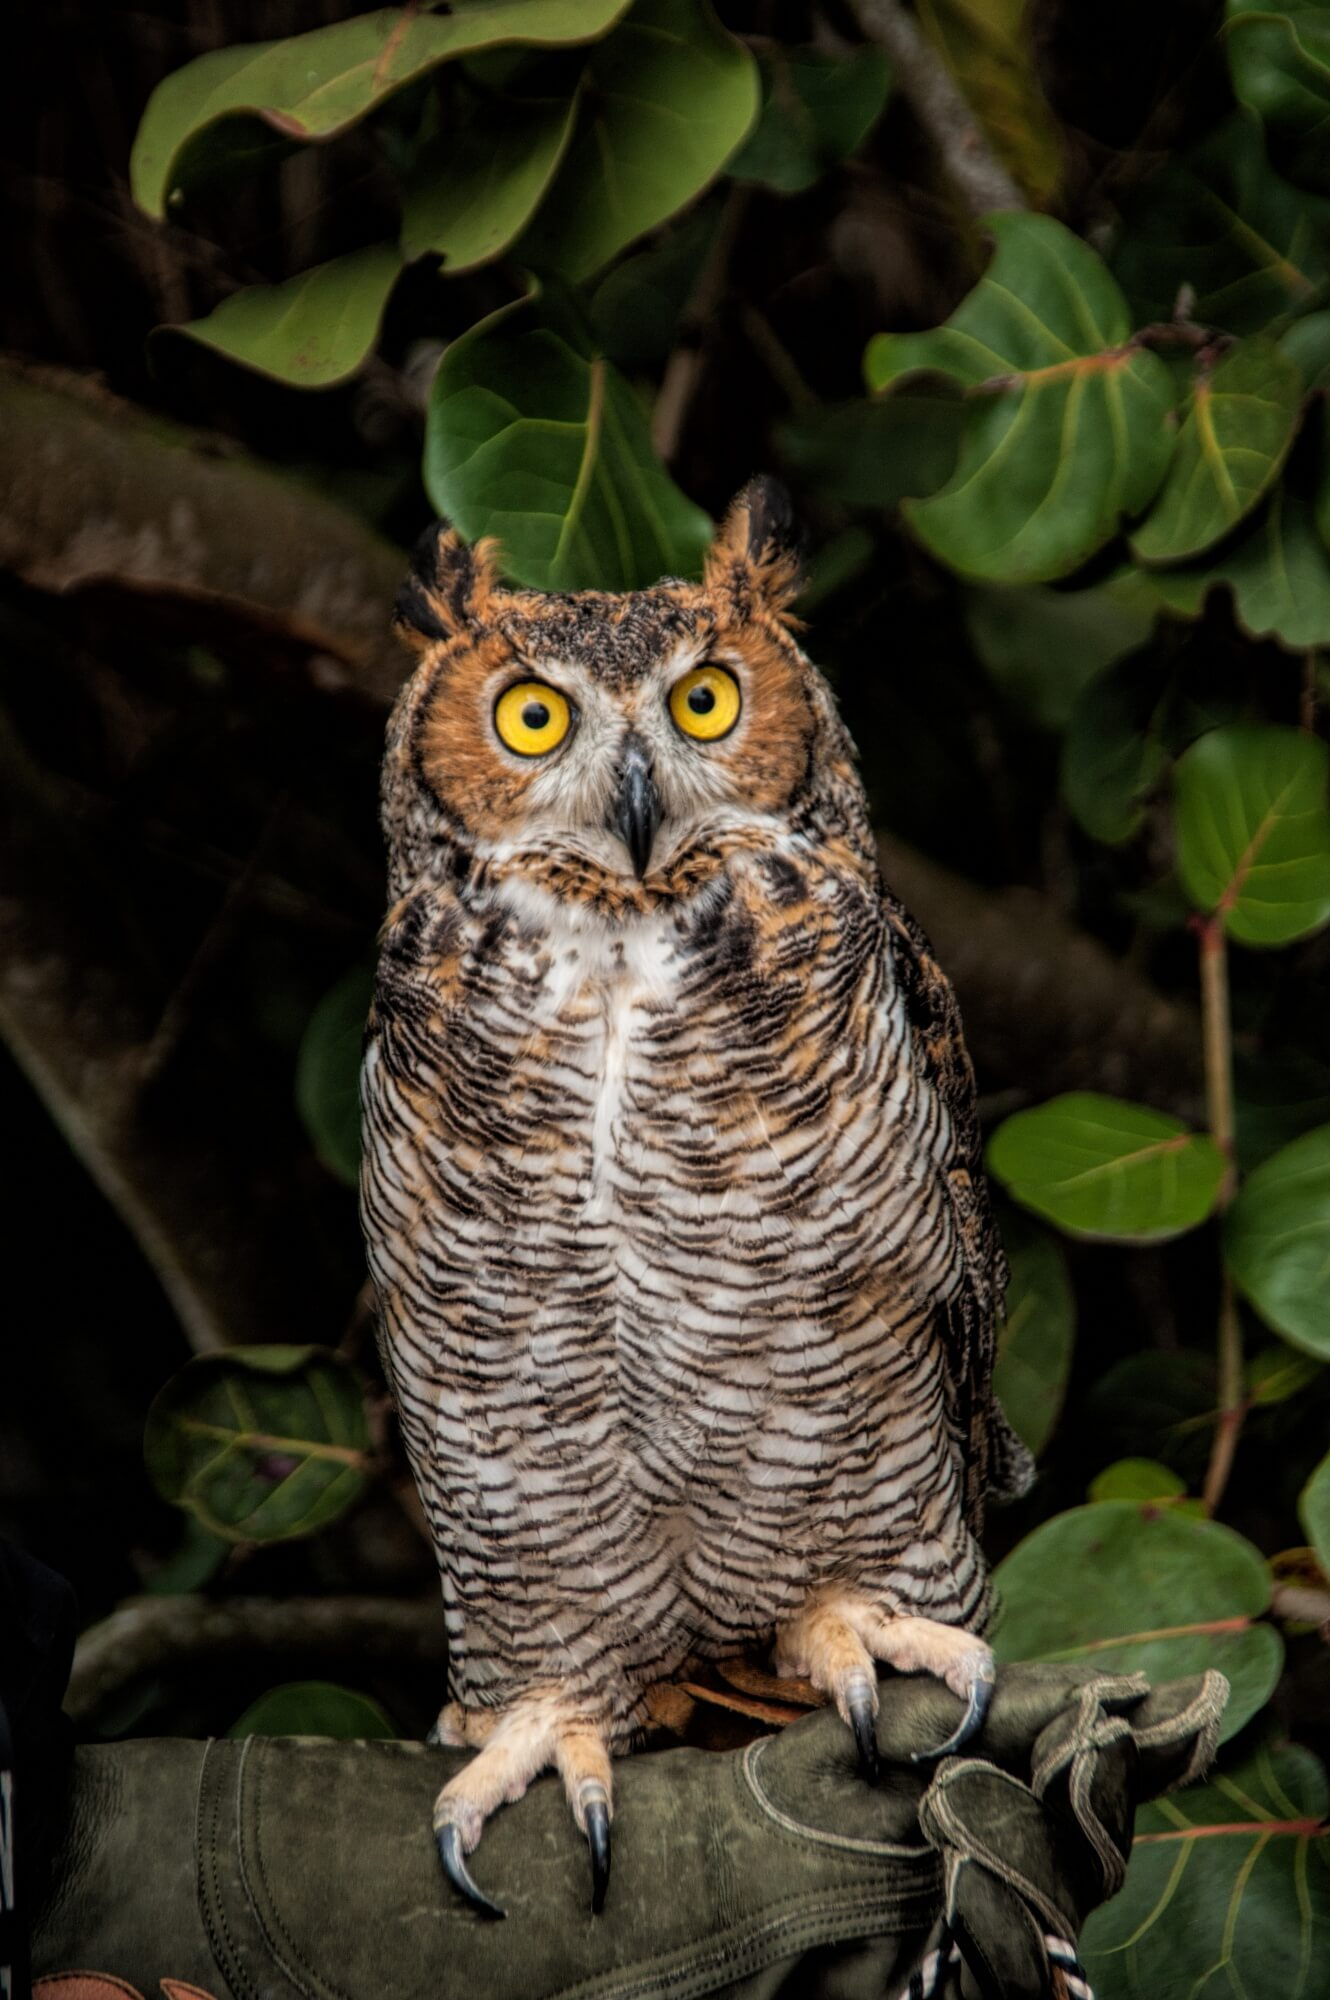 MustDo.com | Bella, a glove-trained great horned owl at Peace River Wildlife Center in Punta Gorda, Florida.